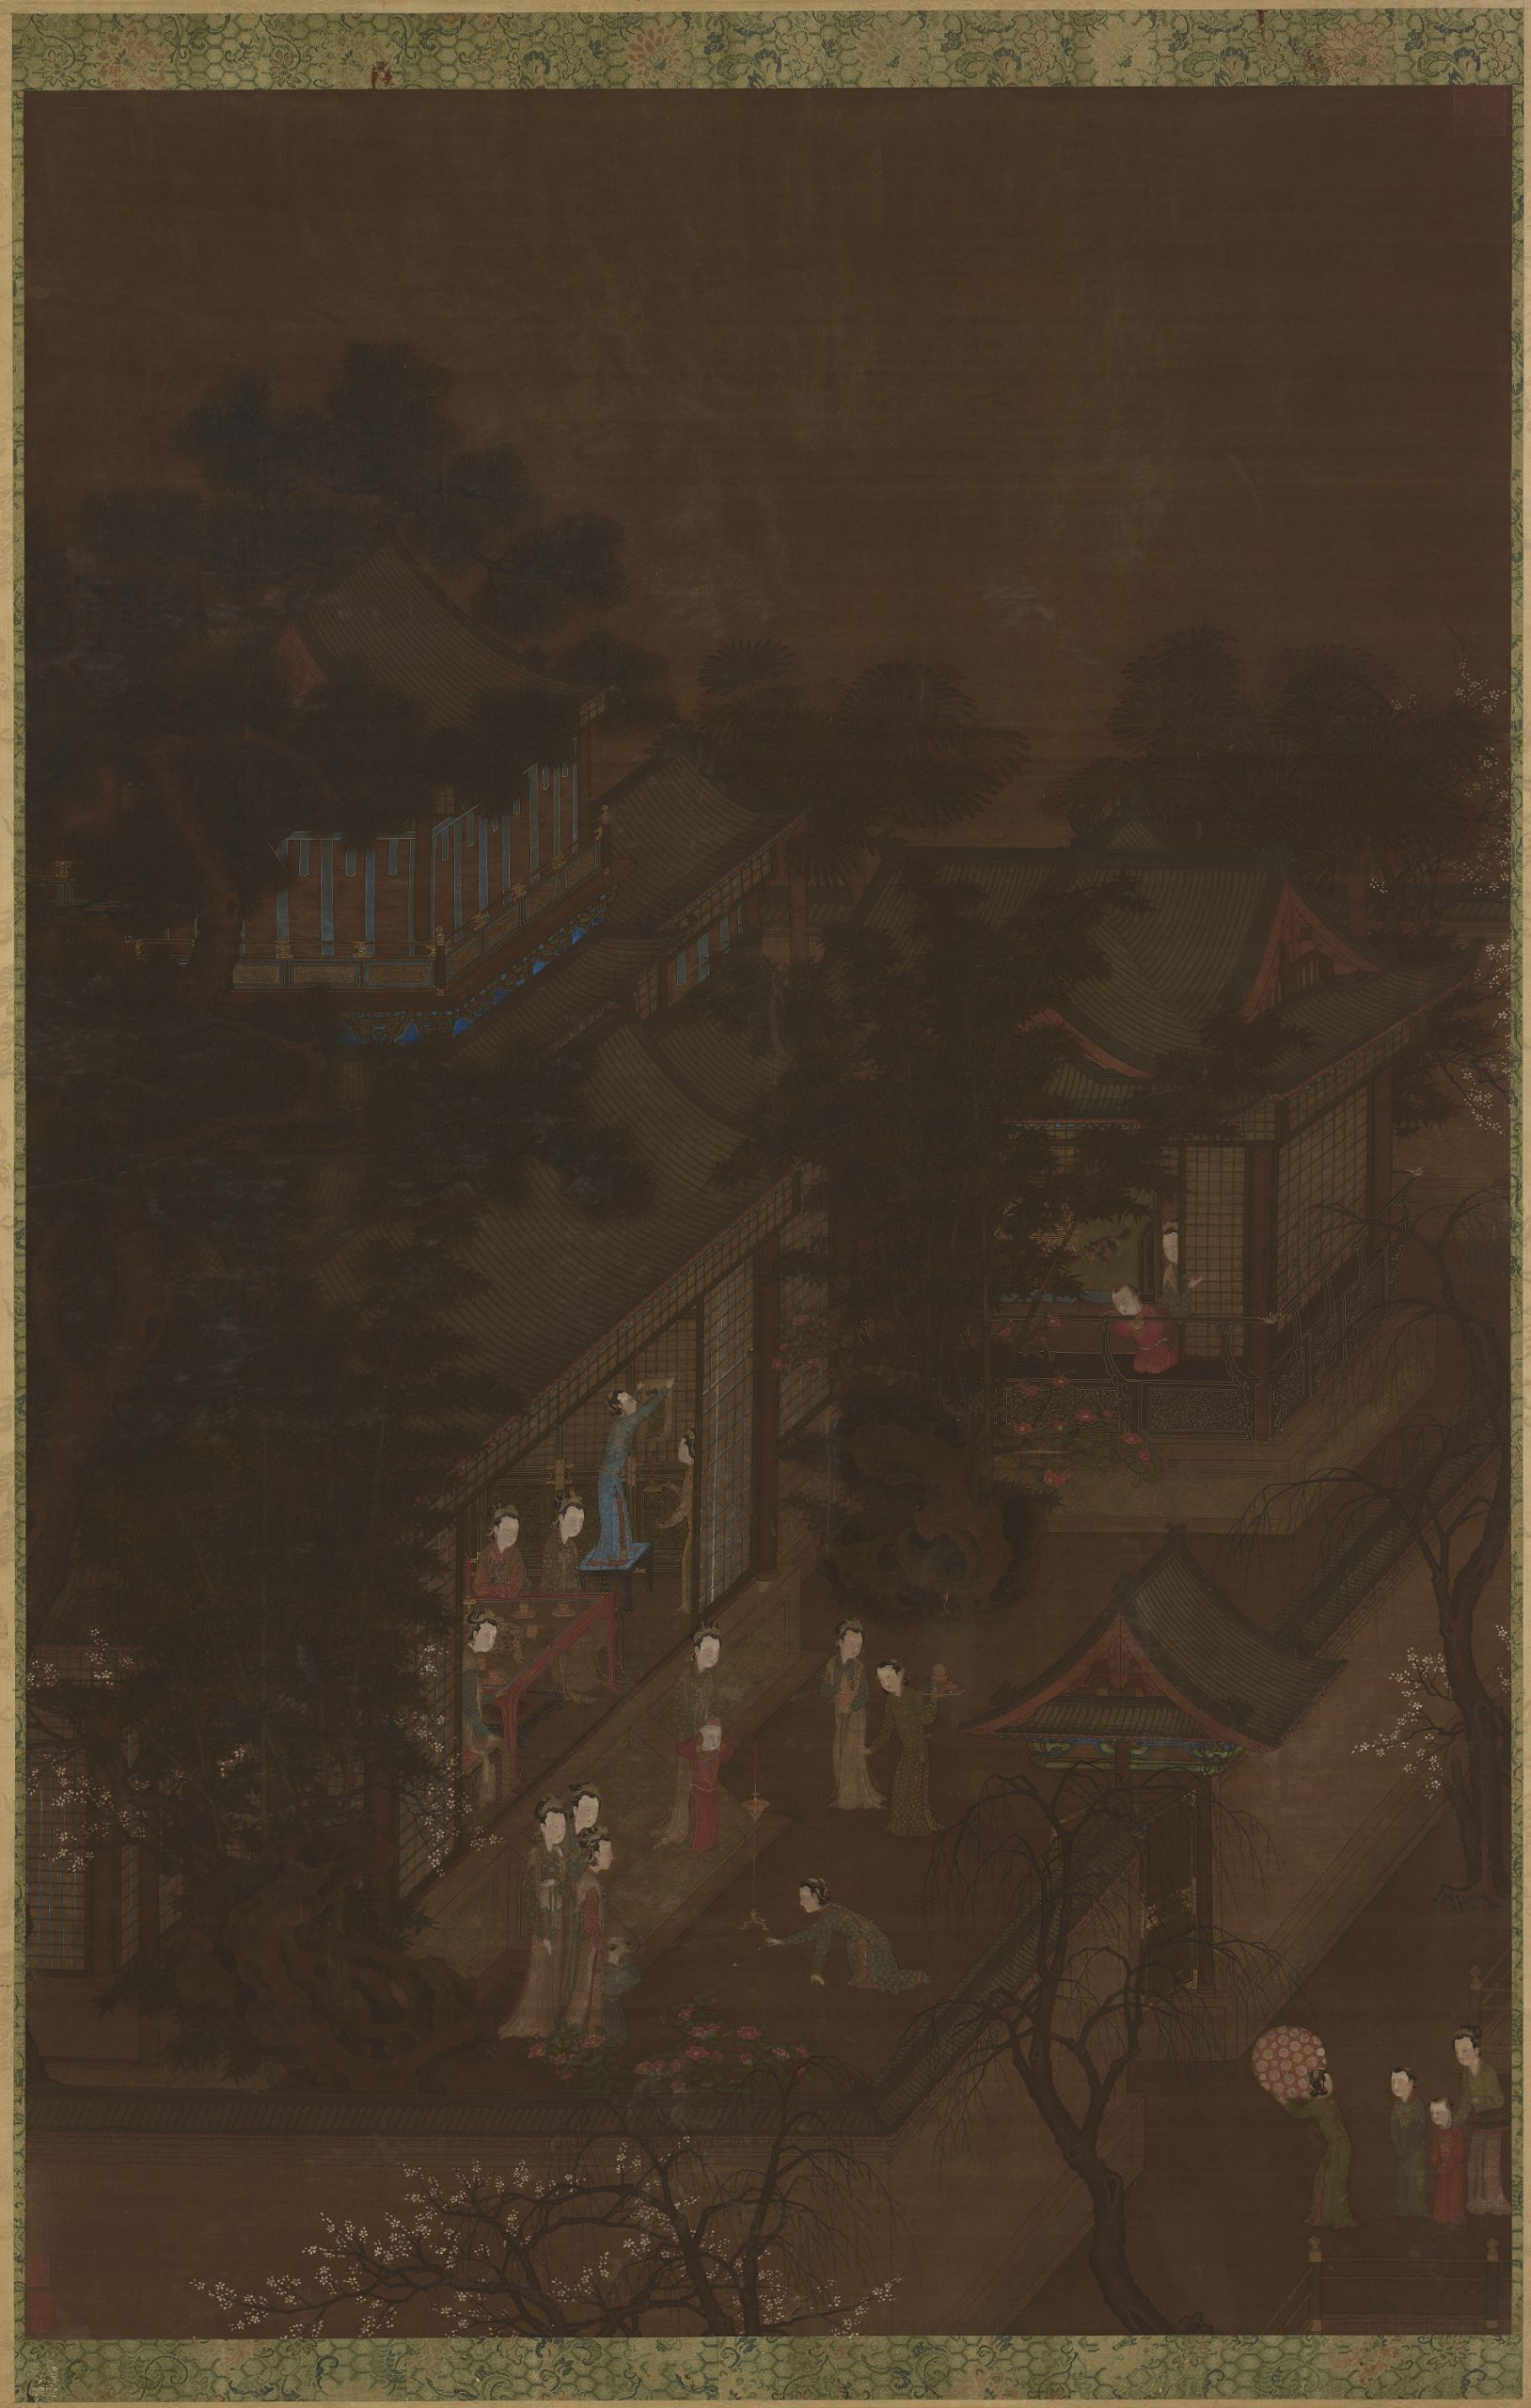 women and children looking outside from their house at night